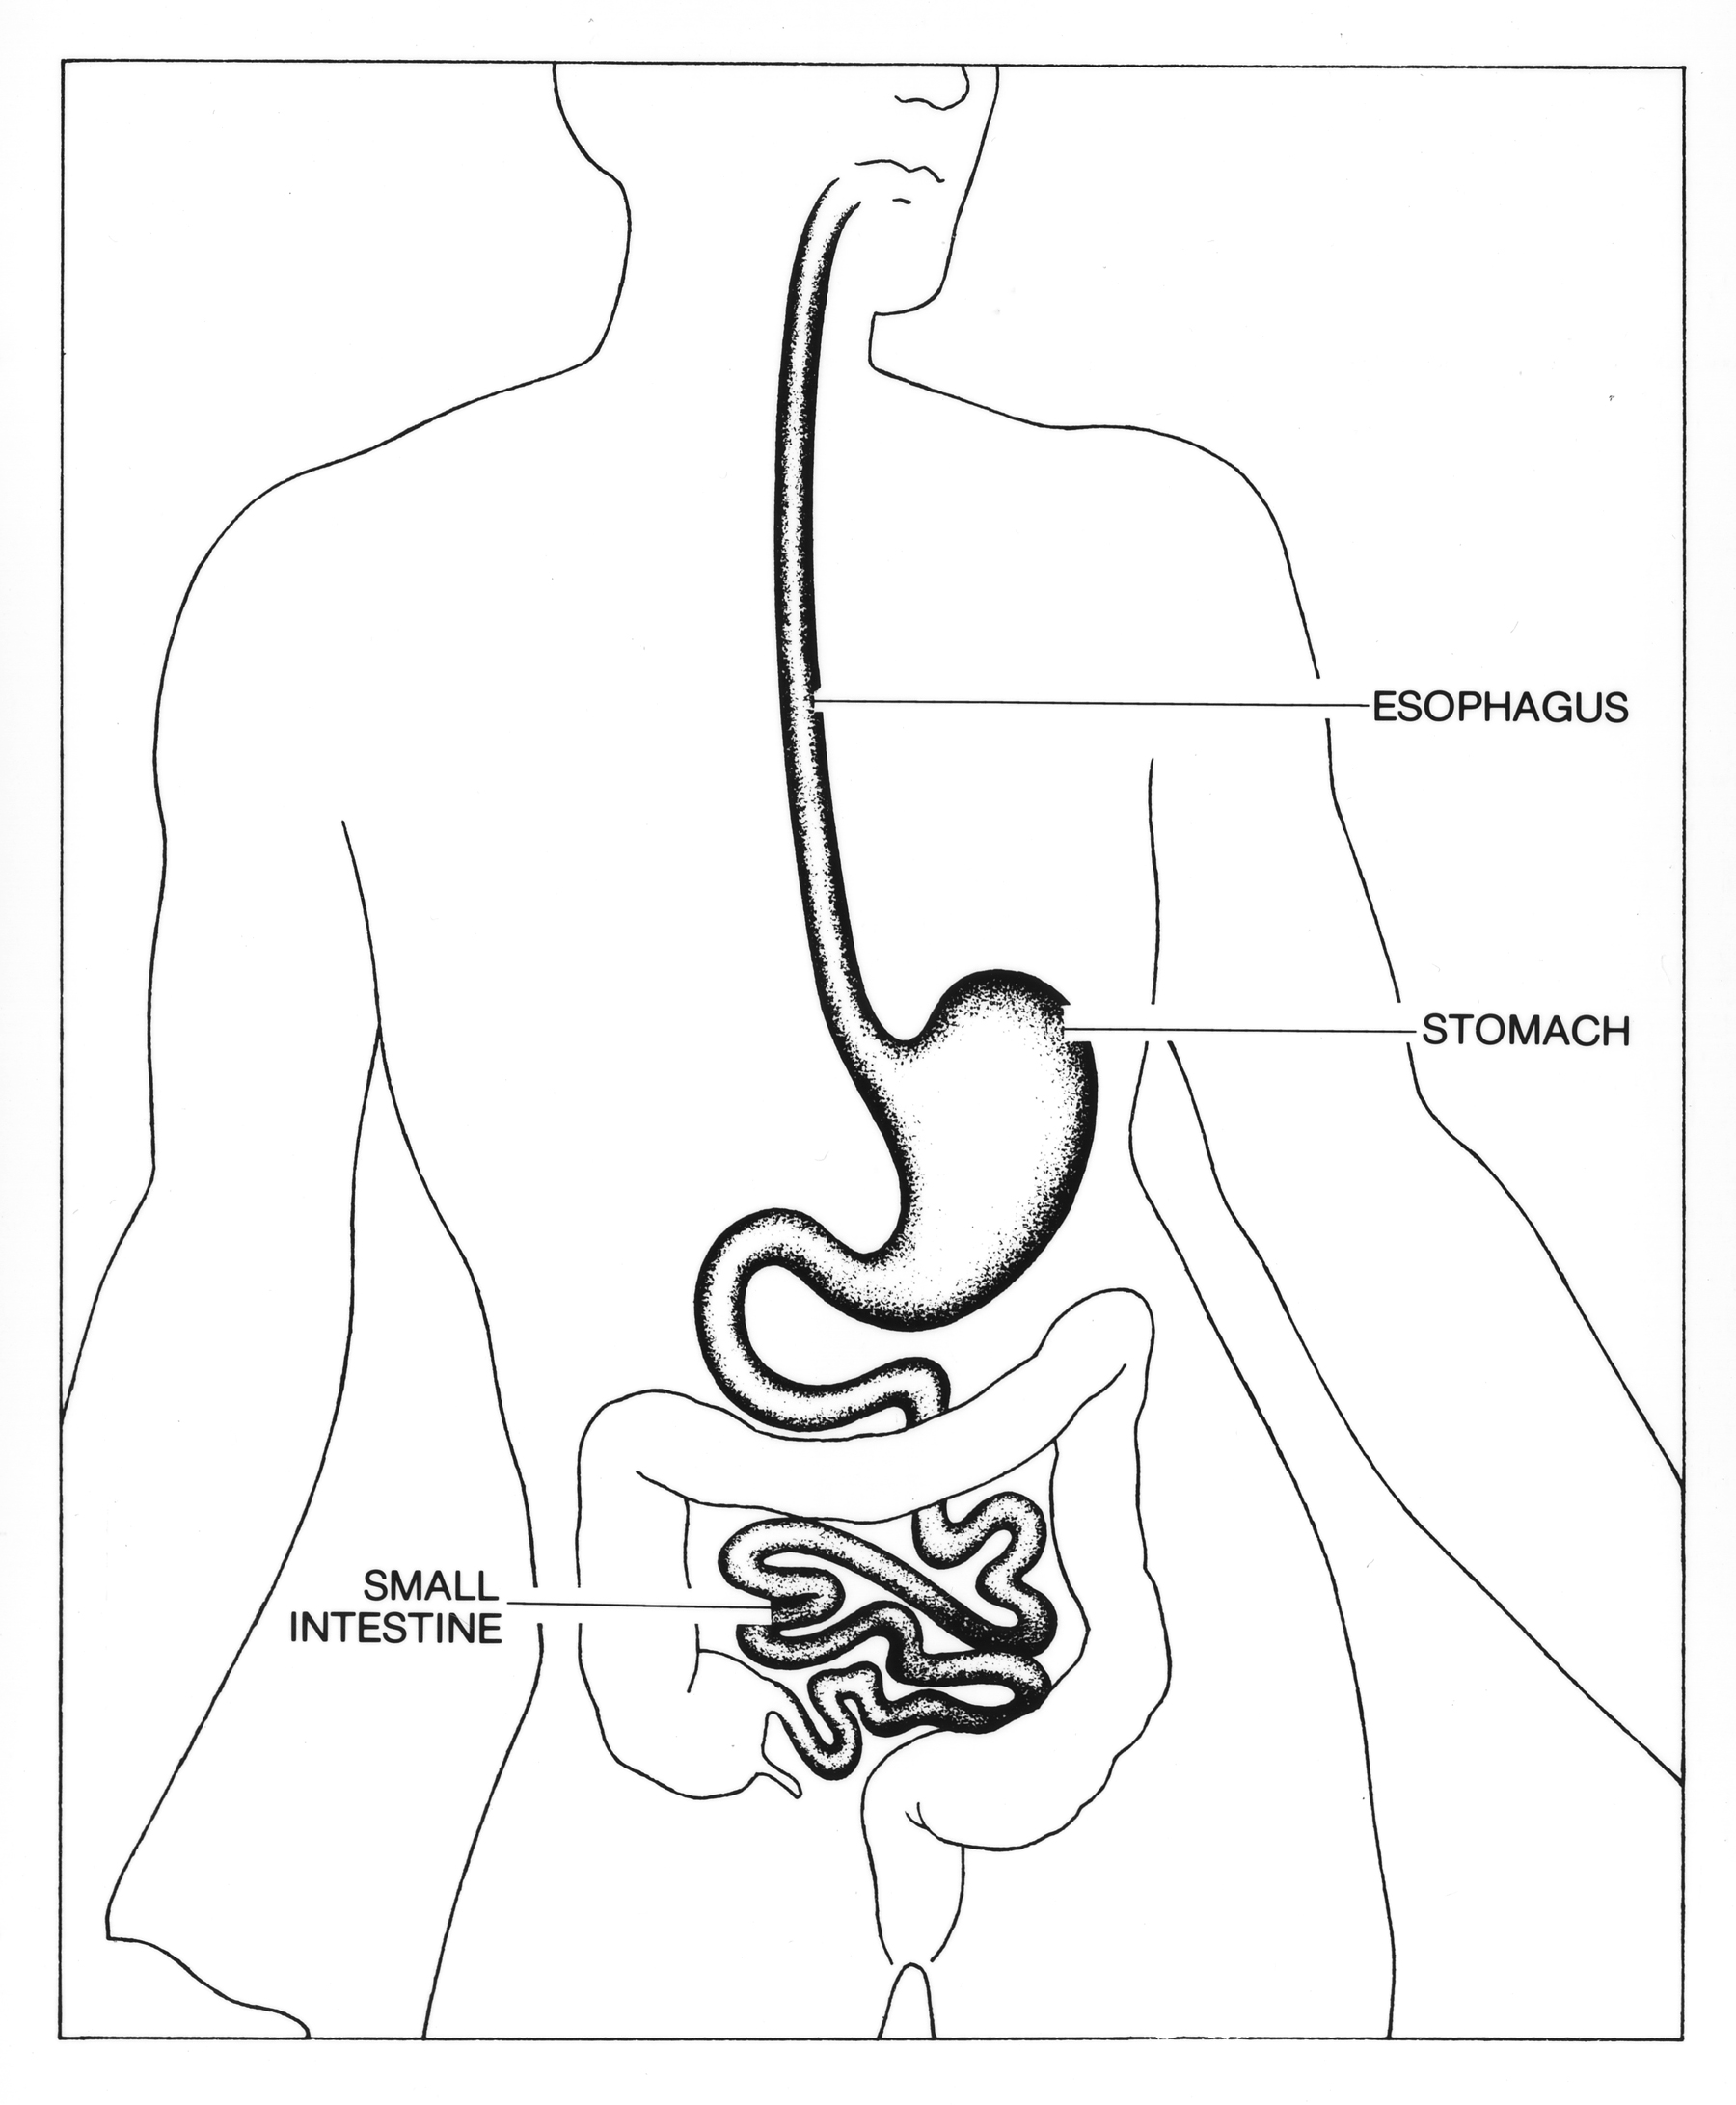 File Esophagus Stomach Small Intestine